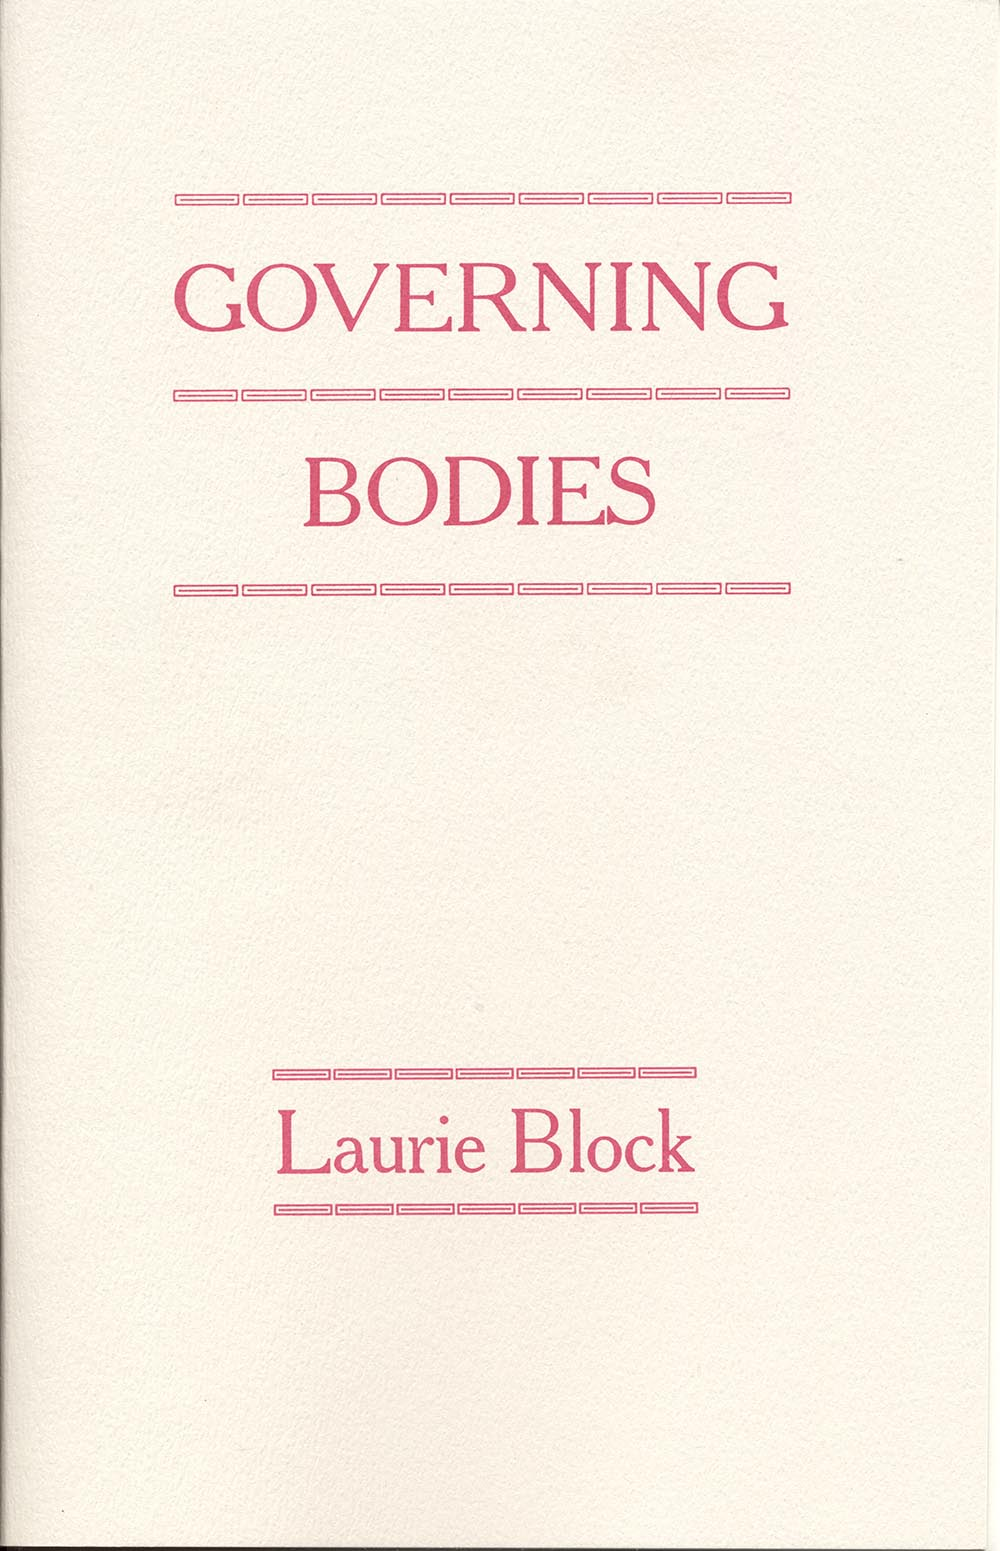 Governing Bodies by Laurie Block